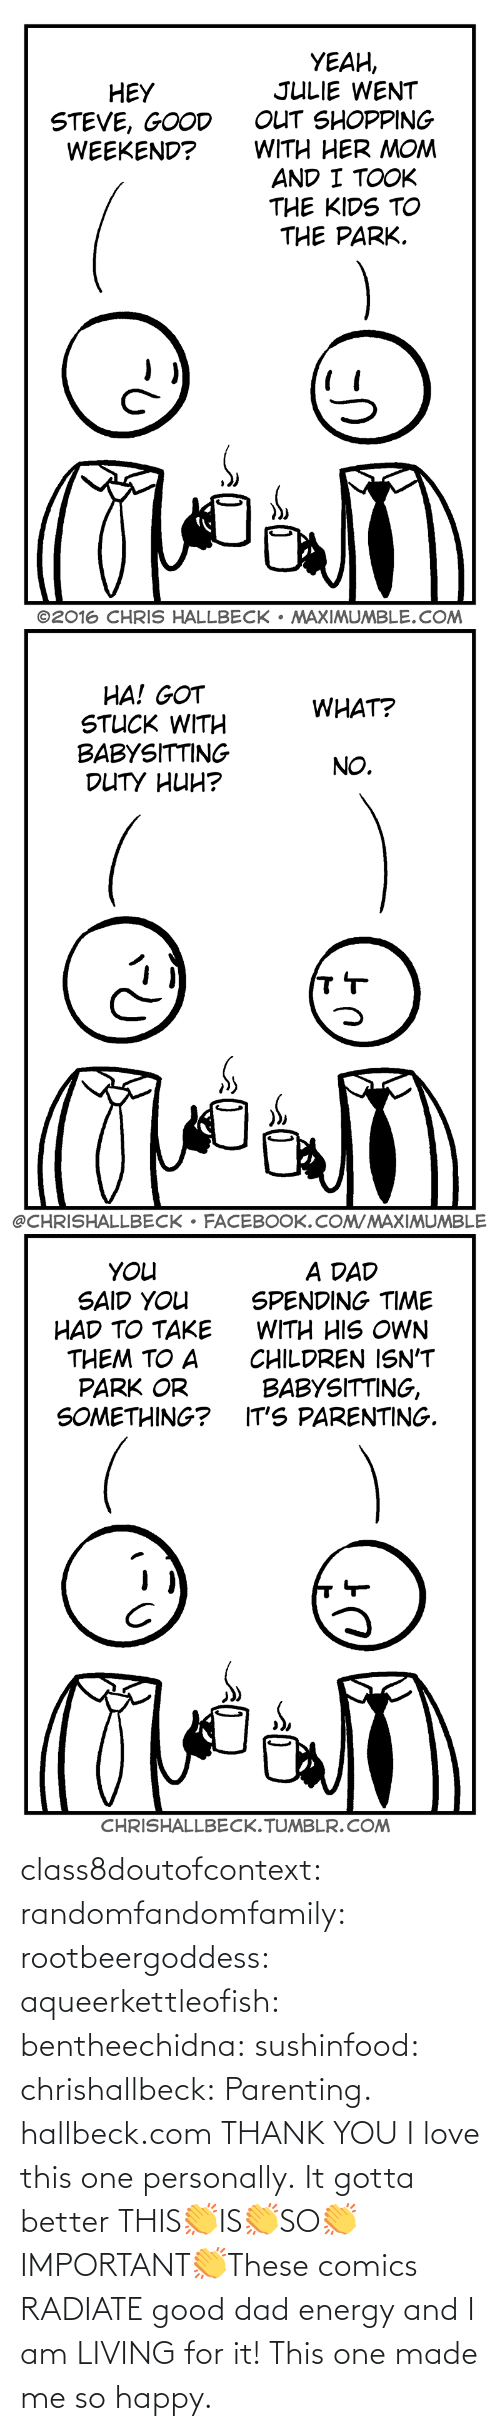 Good: class8doutofcontext: randomfandomfamily:  rootbeergoddess:  aqueerkettleofish:  bentheechidna:  sushinfood:  chrishallbeck:  Parenting. hallbeck.com  THANK YOU  I love this one personally.    It gotta better   THIS👏IS👏SO👏IMPORTANT👏These comics RADIATE good dad energy and I am LIVING for it!    This one made me so happy.